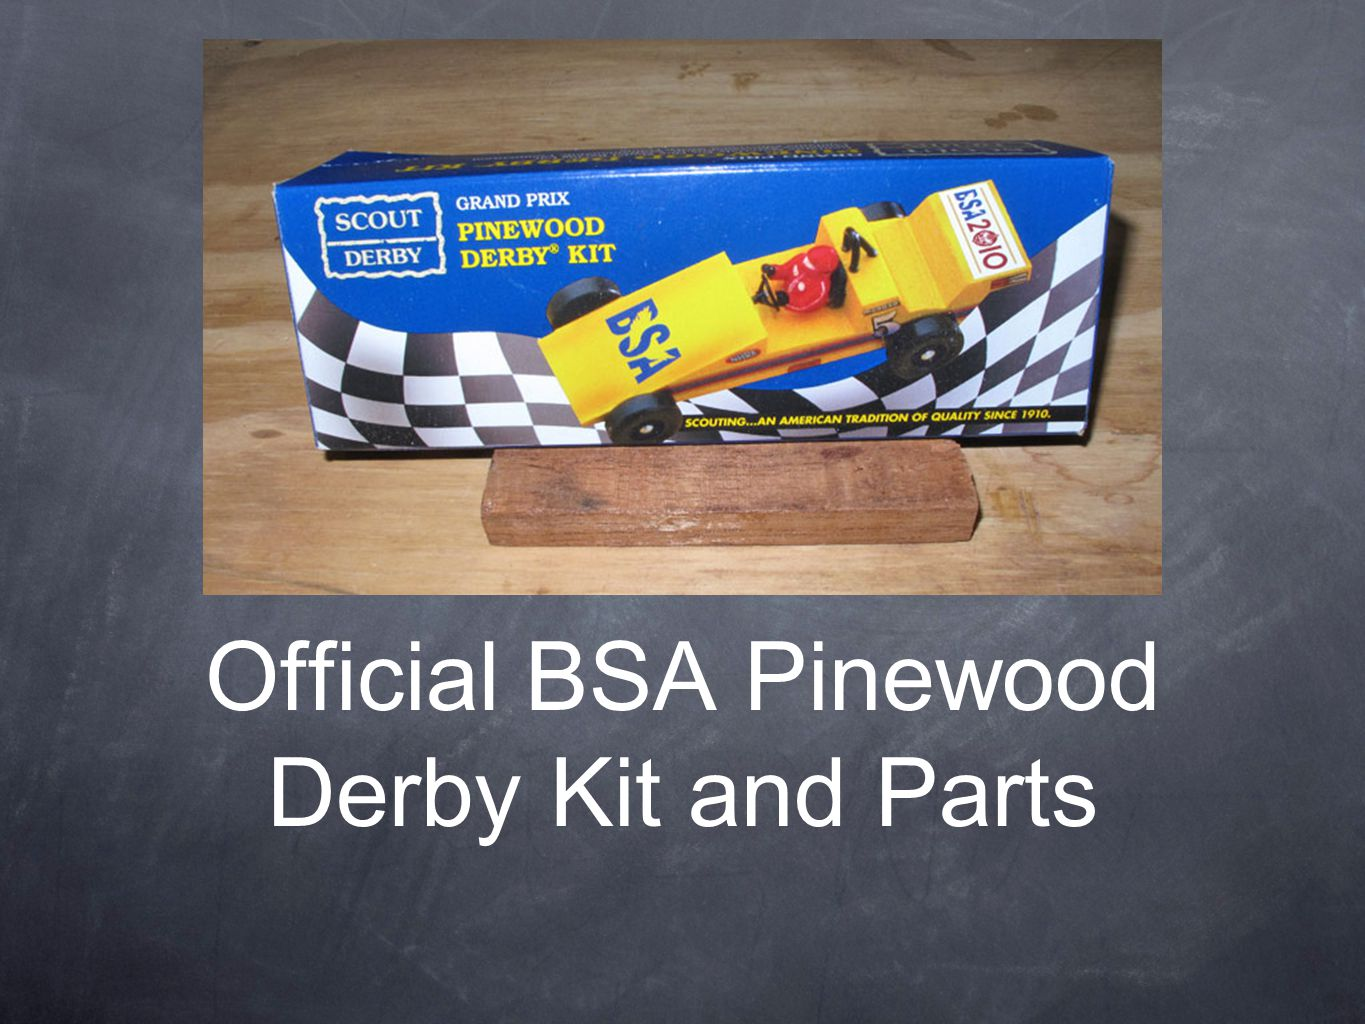 Official BSA Pinewood Derby Kit and Parts